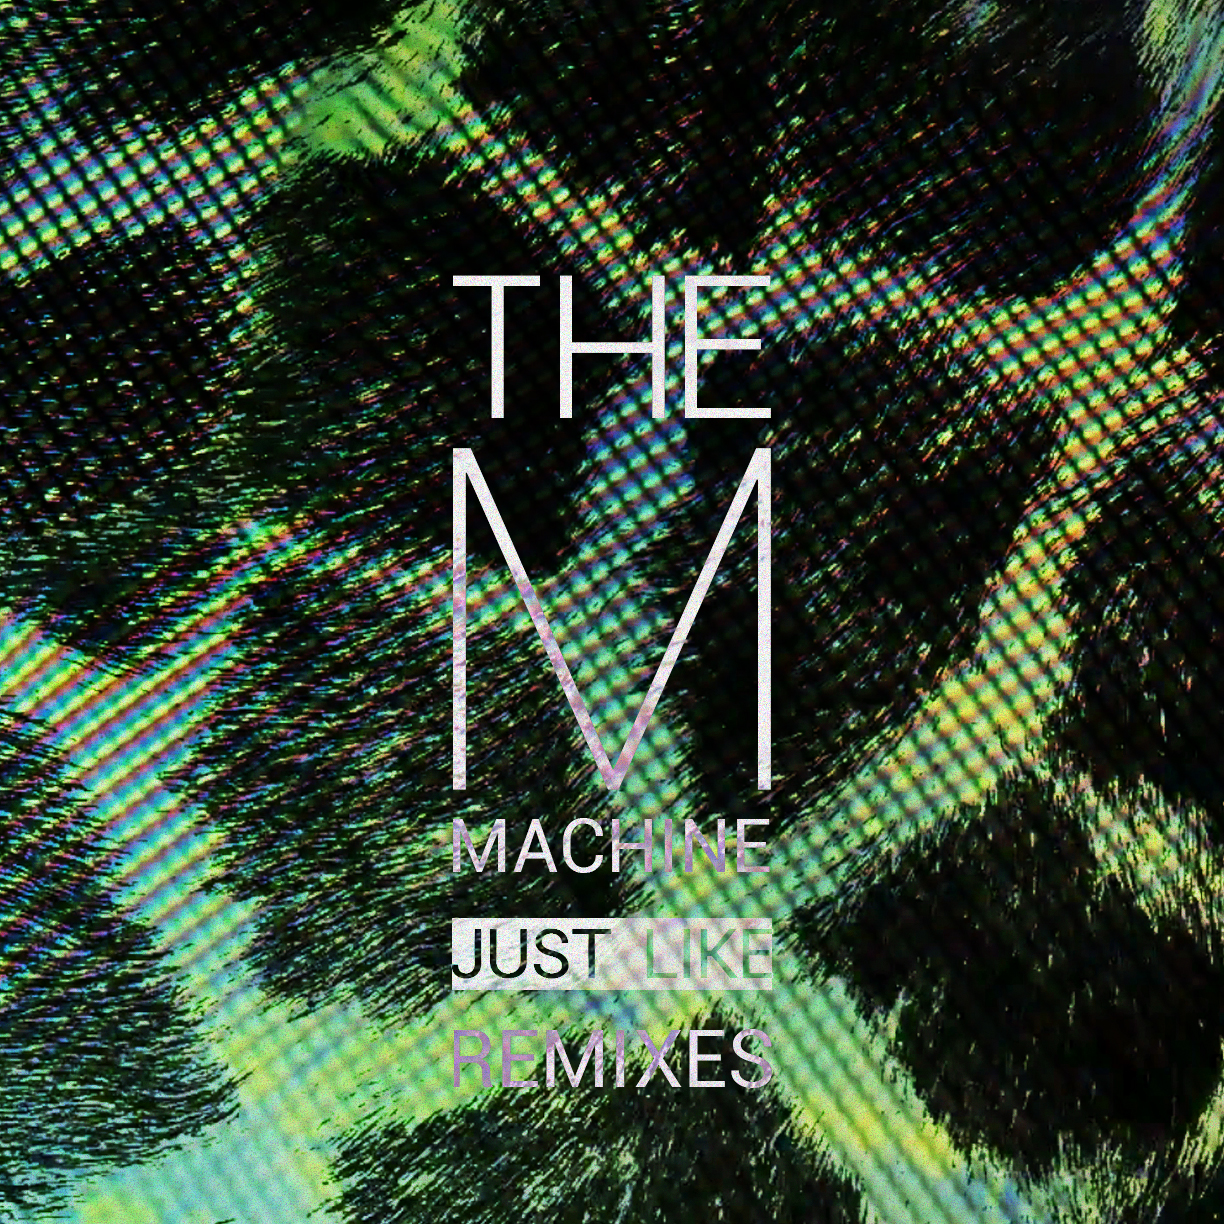 RELEASES | The M Machine - Just Like Remixes